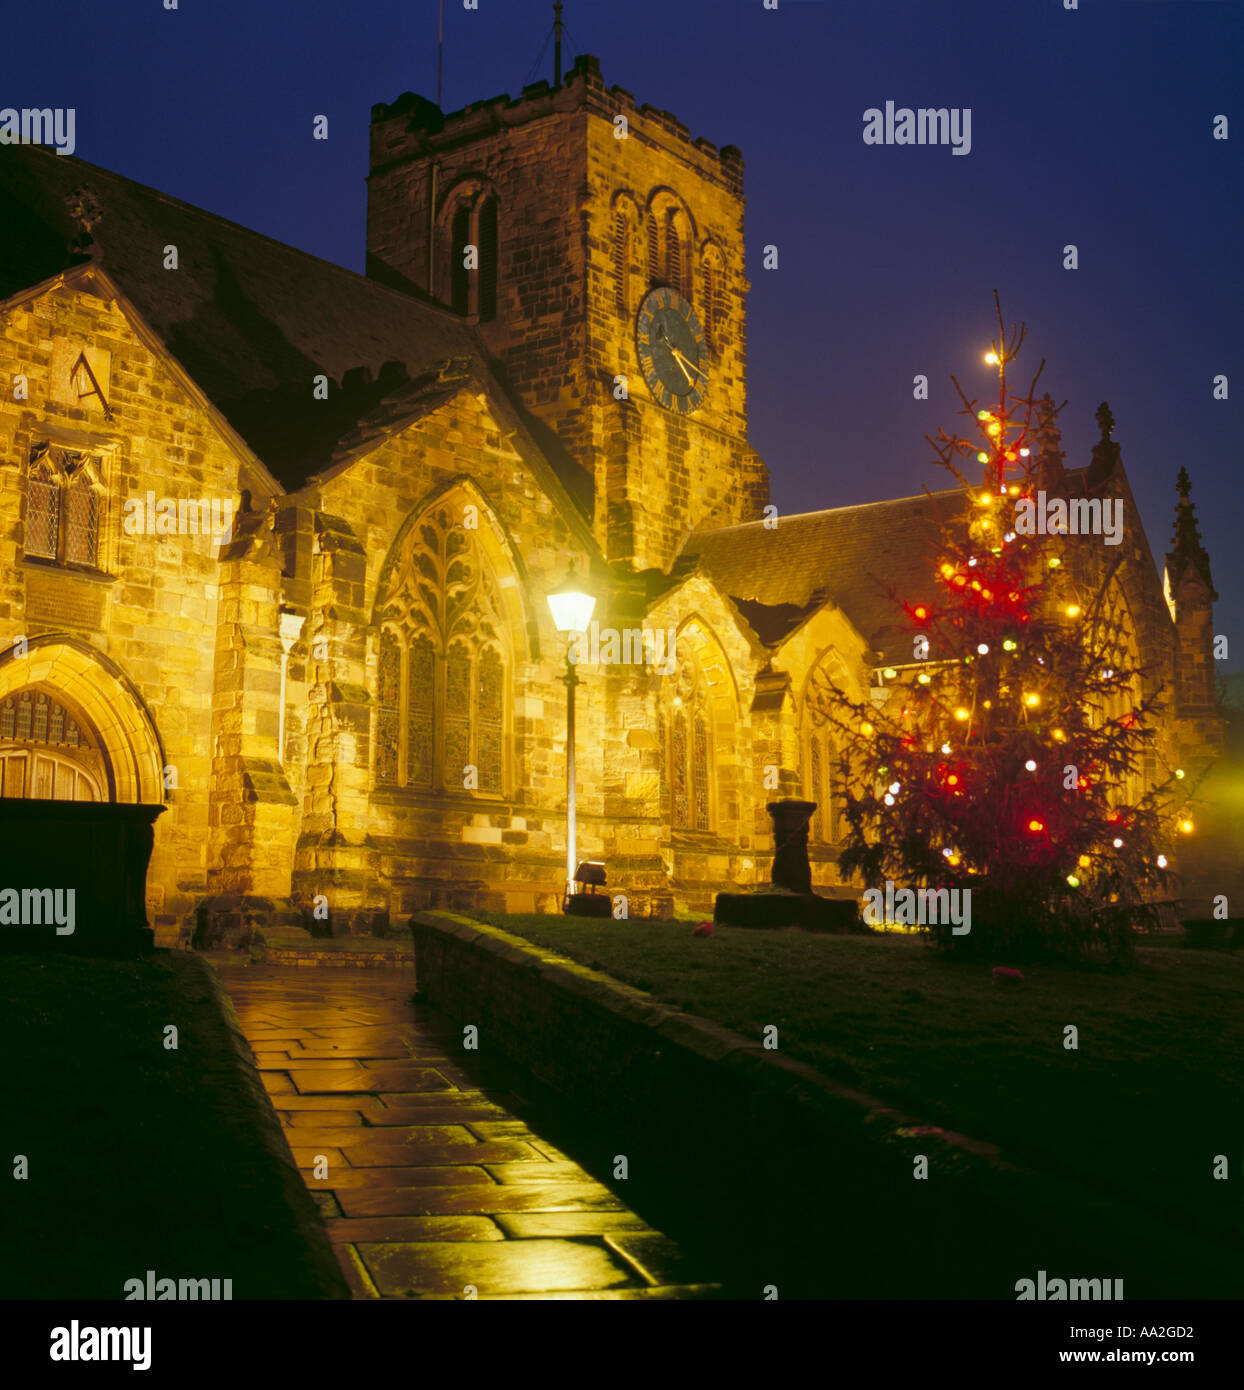 town square christmas tree uk stockfotos town square. Black Bedroom Furniture Sets. Home Design Ideas